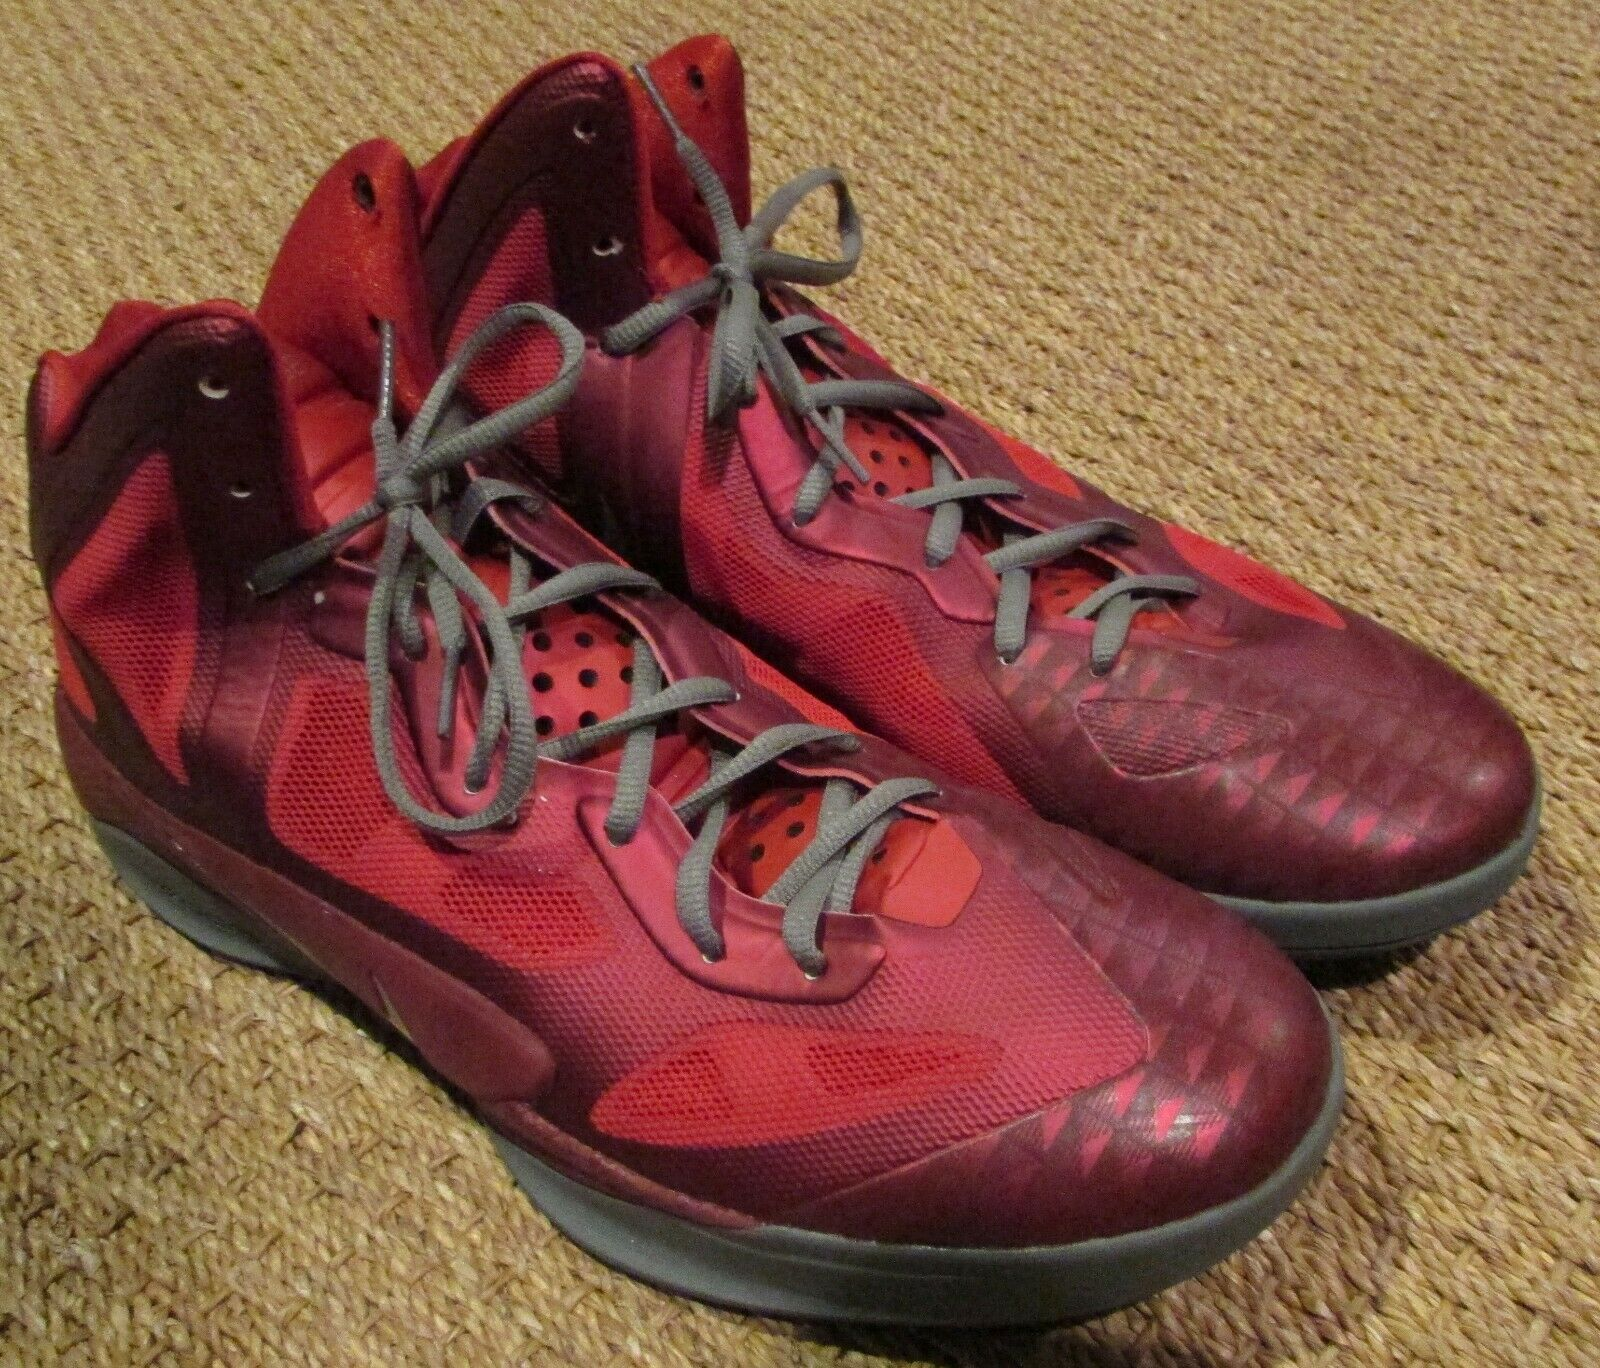 Nike Air Zoom Hyperfuse 2011 Team Red Basketball shoes Sneakers Size 12